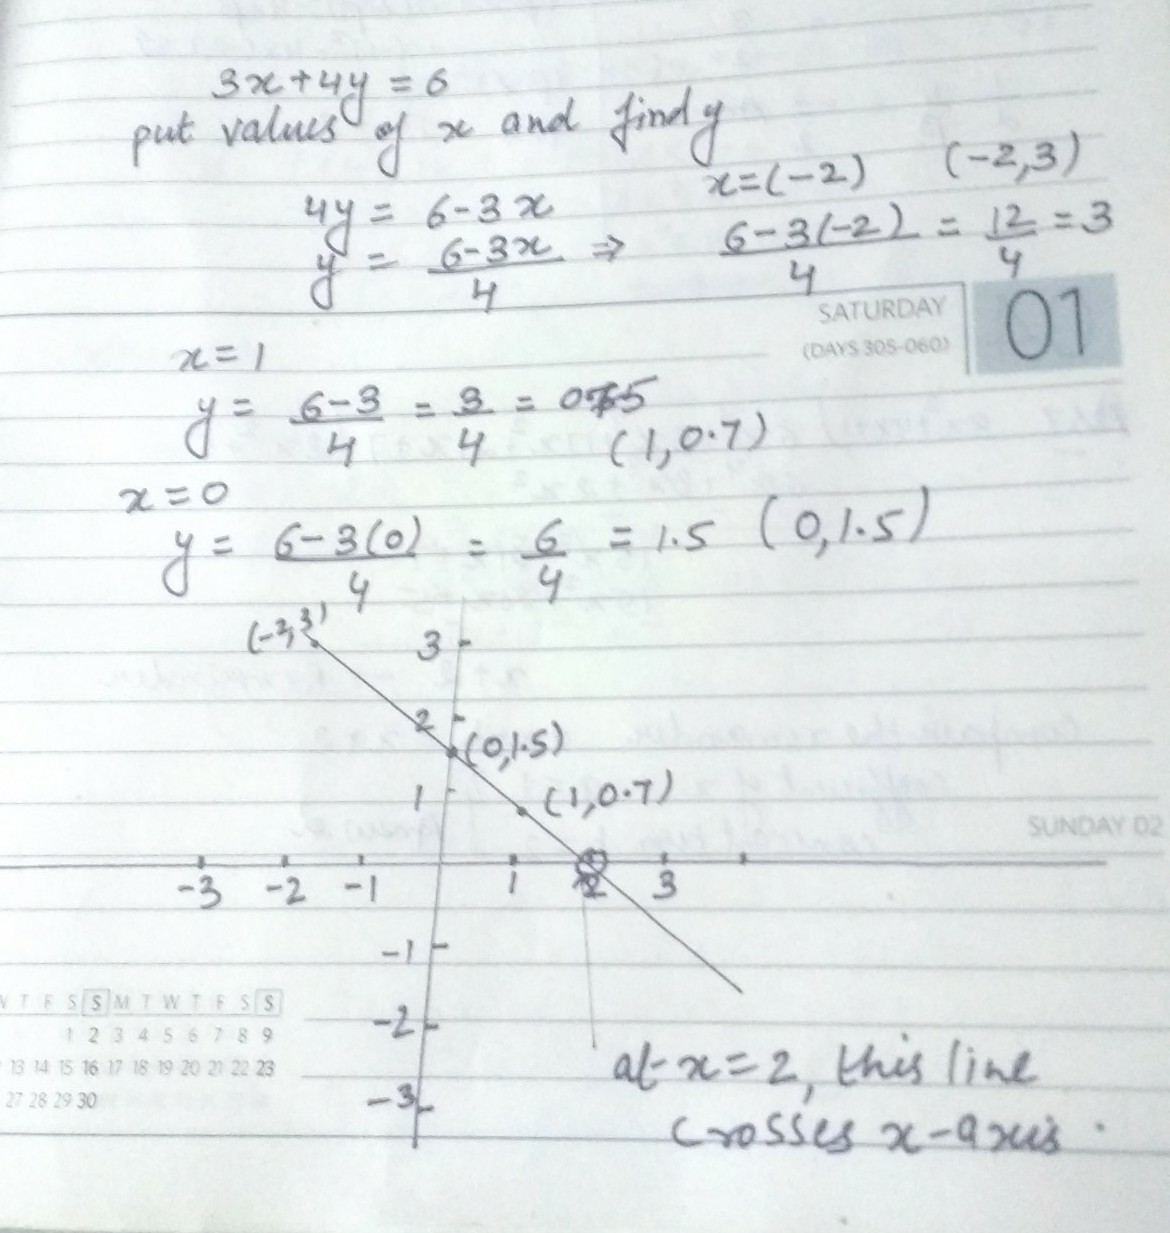 Draw The Graph Of Linear Equation 3x 4y 6 What Points